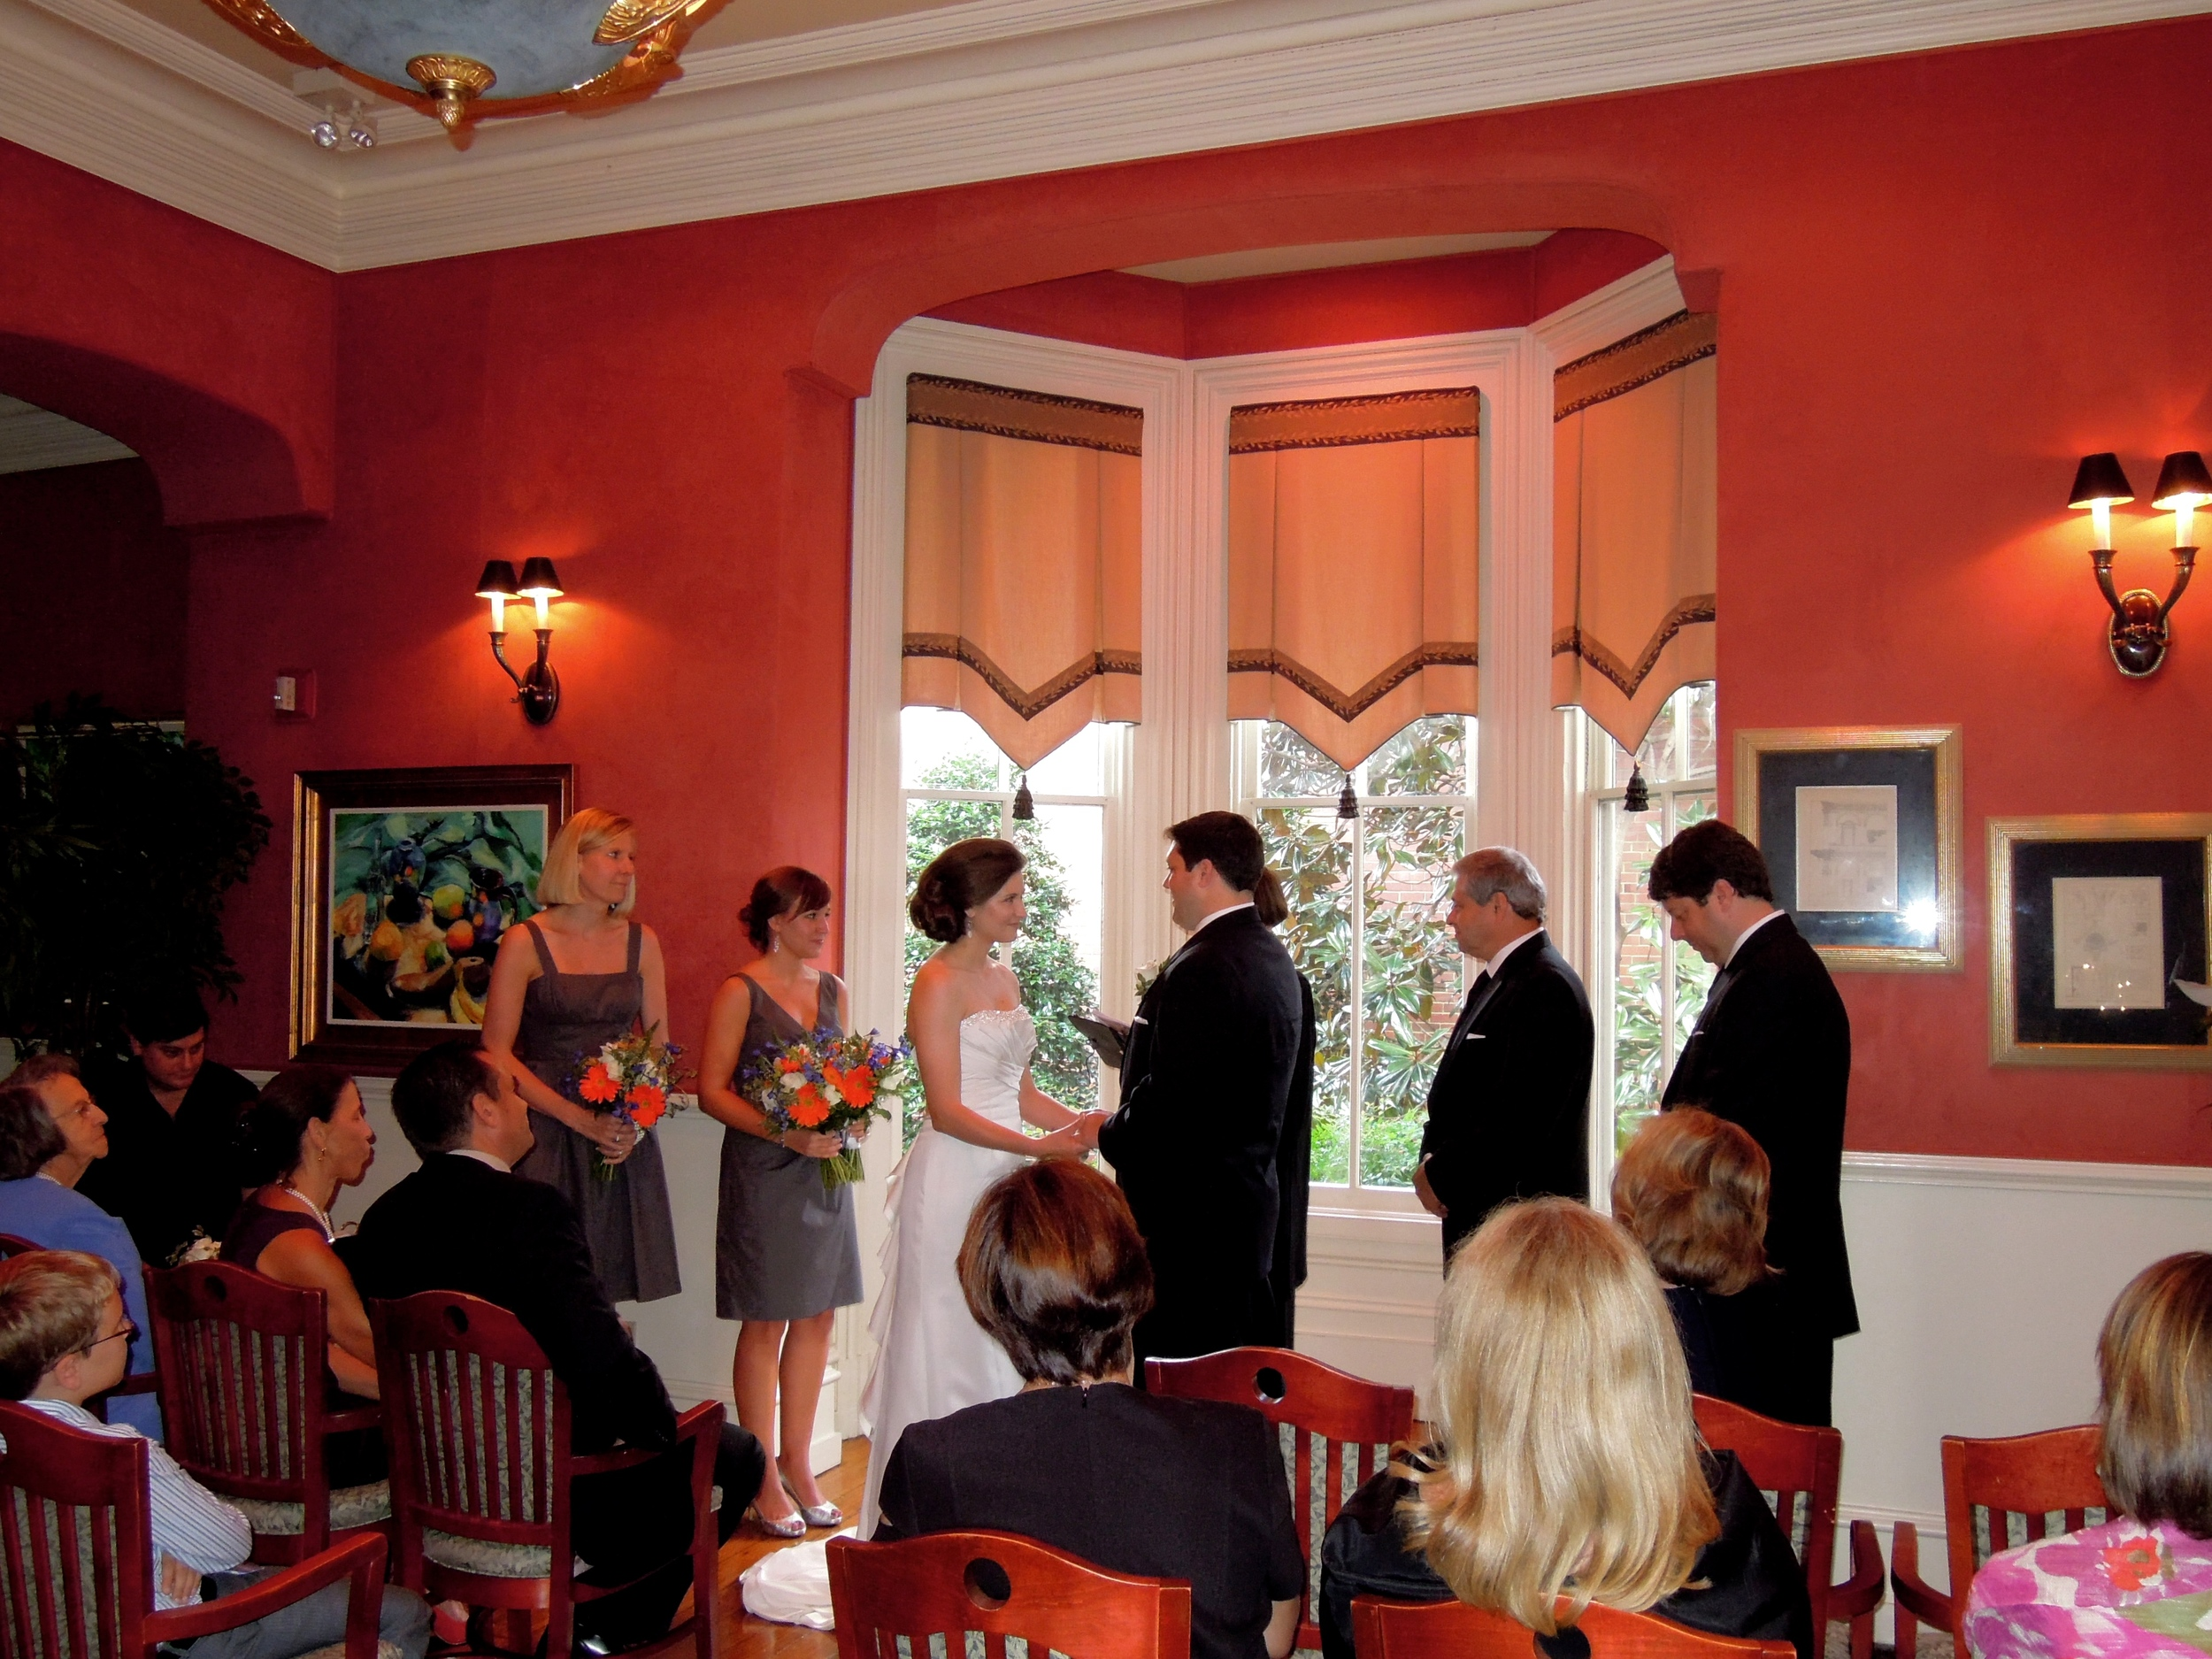 Small intimate wedding at the historic Second Empire restaurant in downtown Raleigh